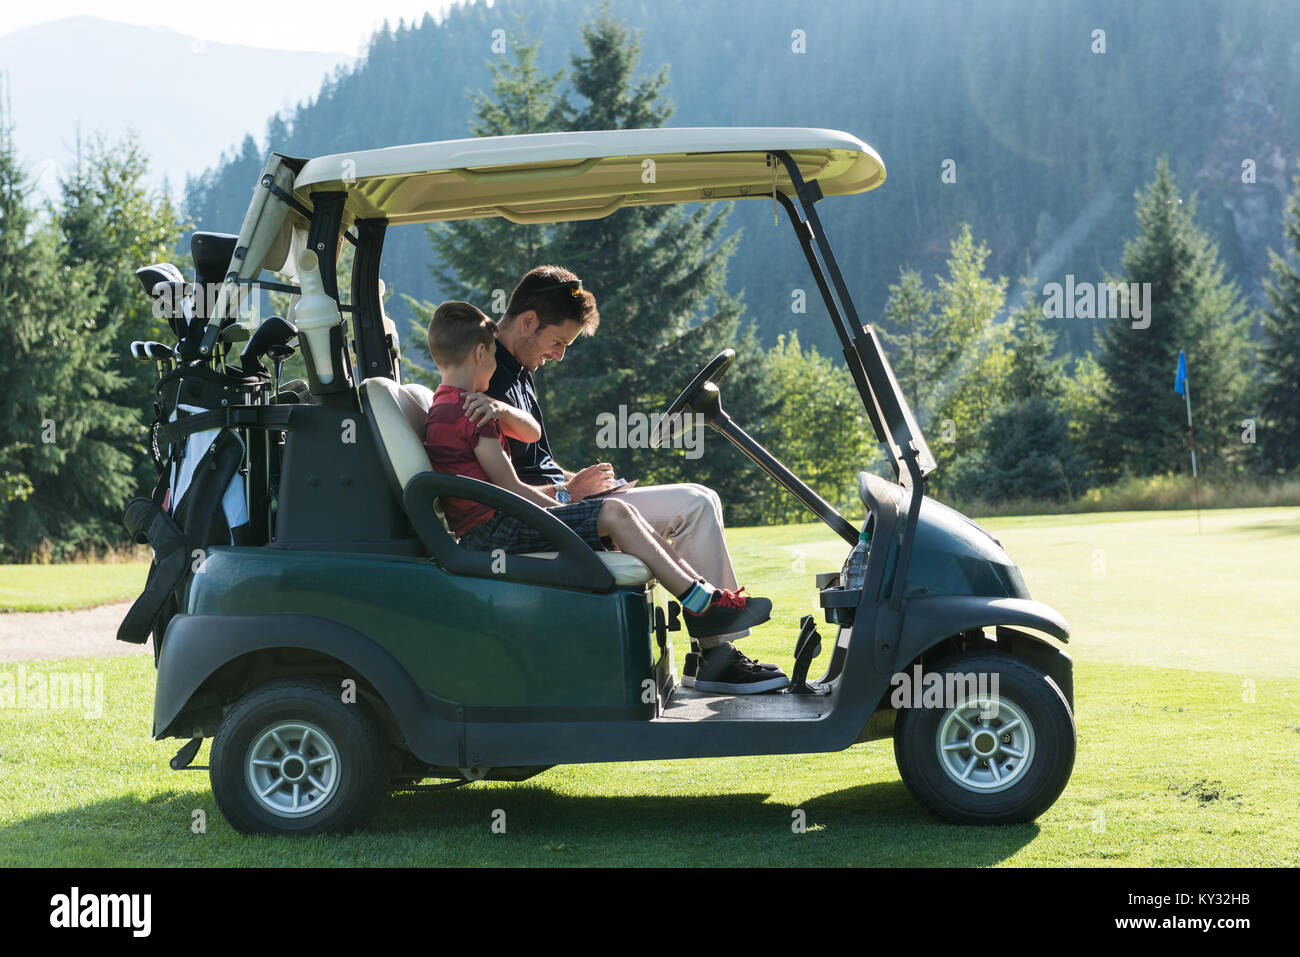 Father and son sitting in the golf cart - Stock Image